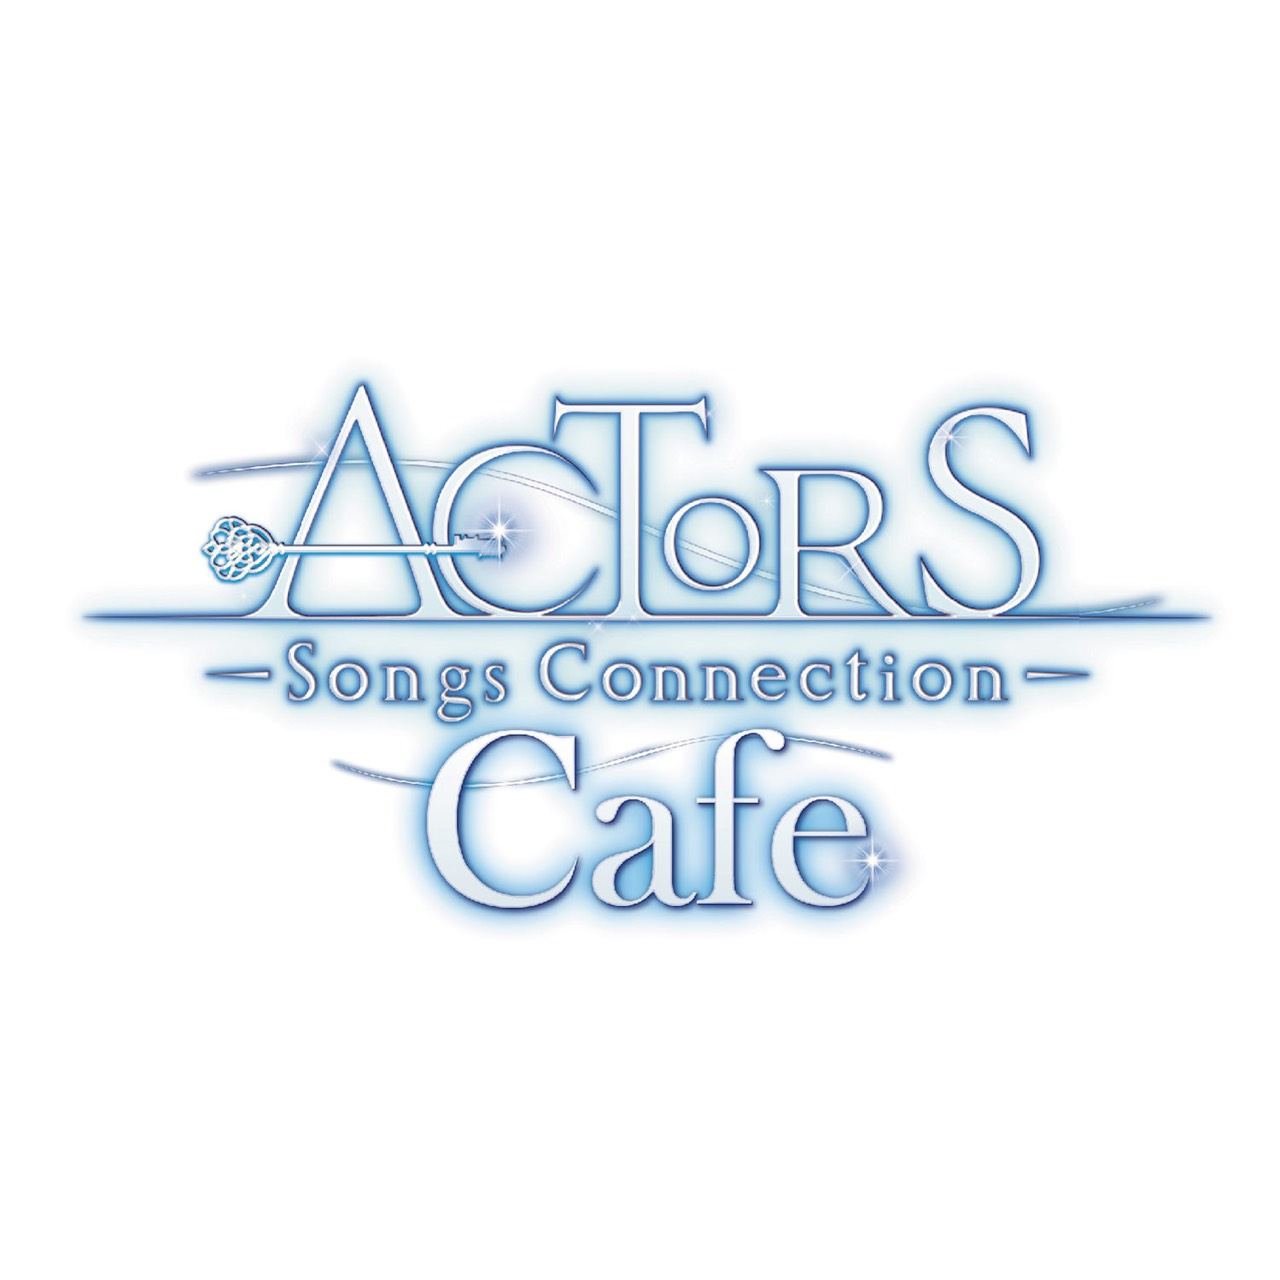 【1月16日】ACTORS cafe